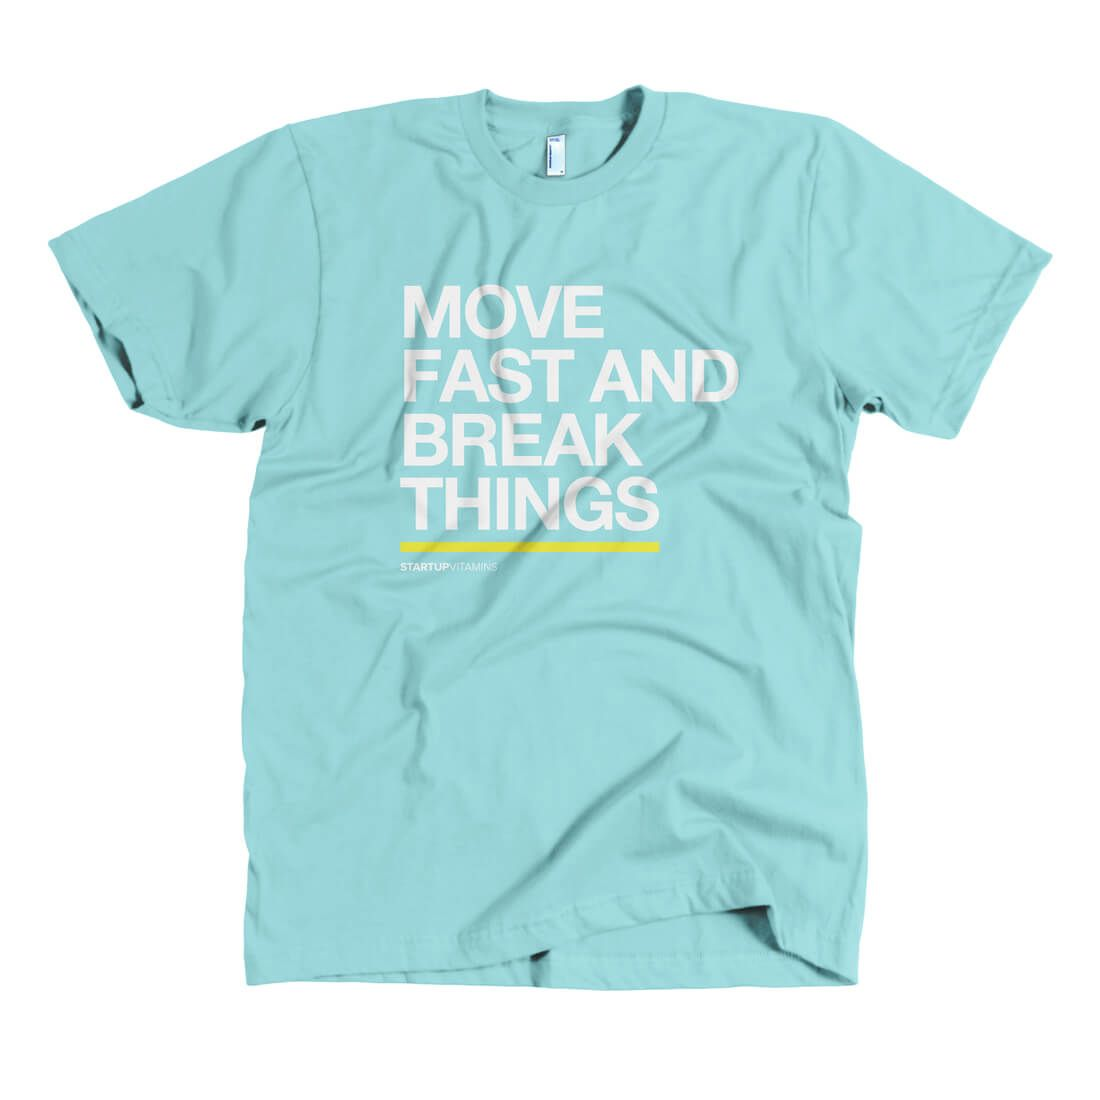 The Only Motivational T-Shirts You'll Ever Need - only $18! - MightyDeals